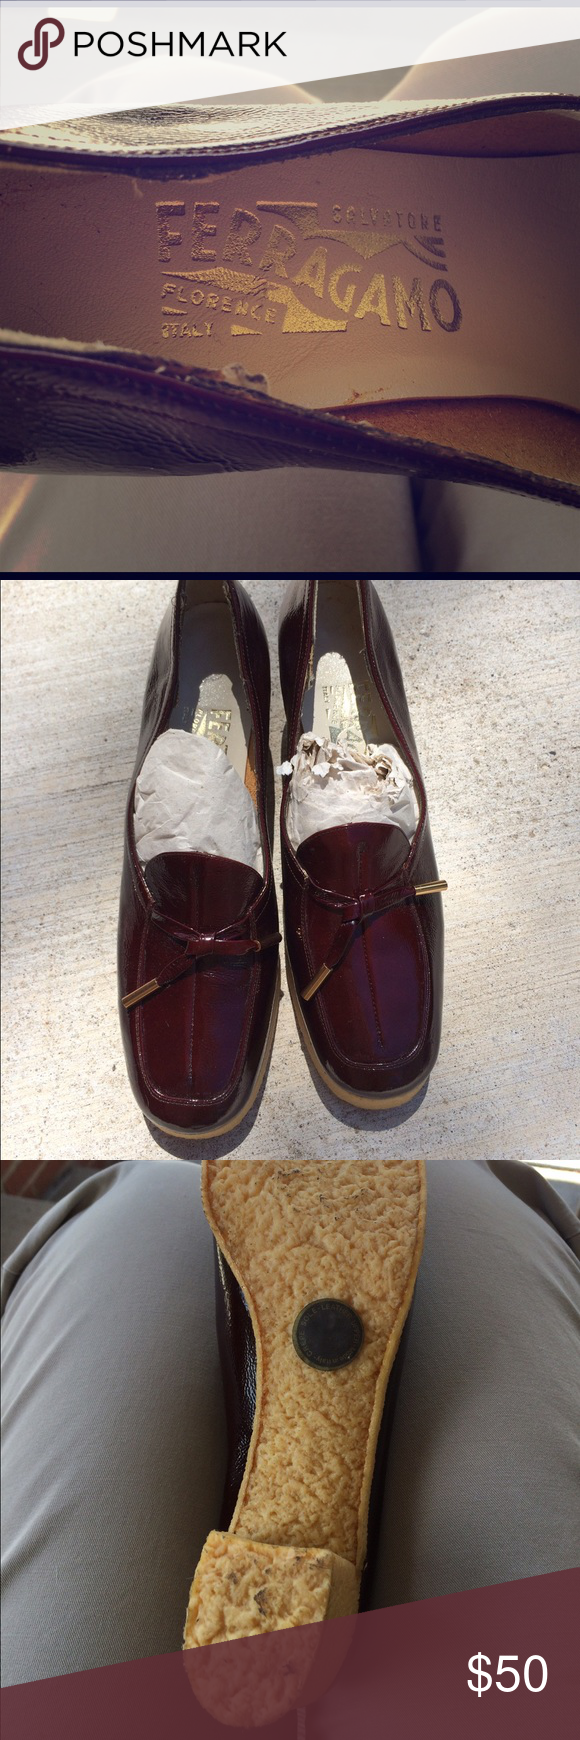 Ferragamo Crepe Sole Shoes Unusual shoes I purchased while going through a 70's vintage phase. I think I wore them once or twice. They are a oxblood color. In decent vintage condition, they are slightly bent from being in a box so long. They are narrow. Any questions, just ask. I can take additional photos, if needed. 😊 Ferragamo Shoes Heels